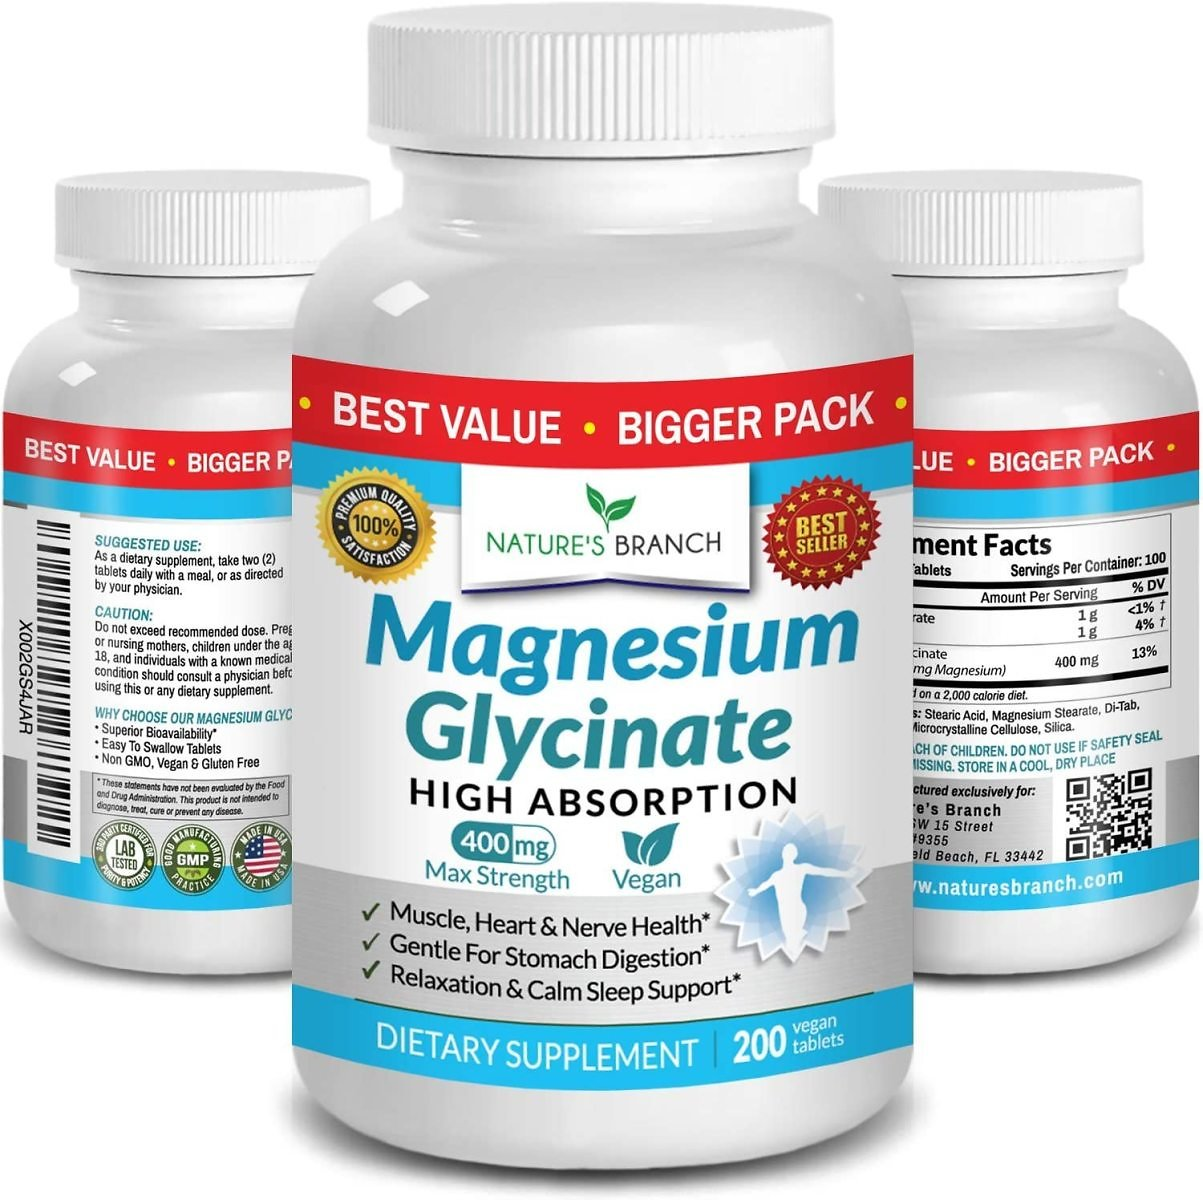 Magnesium Glycinate 400 Mg - 200 Tablets - High Absorption, Non Buffered Bisglycinate Mag Supplement